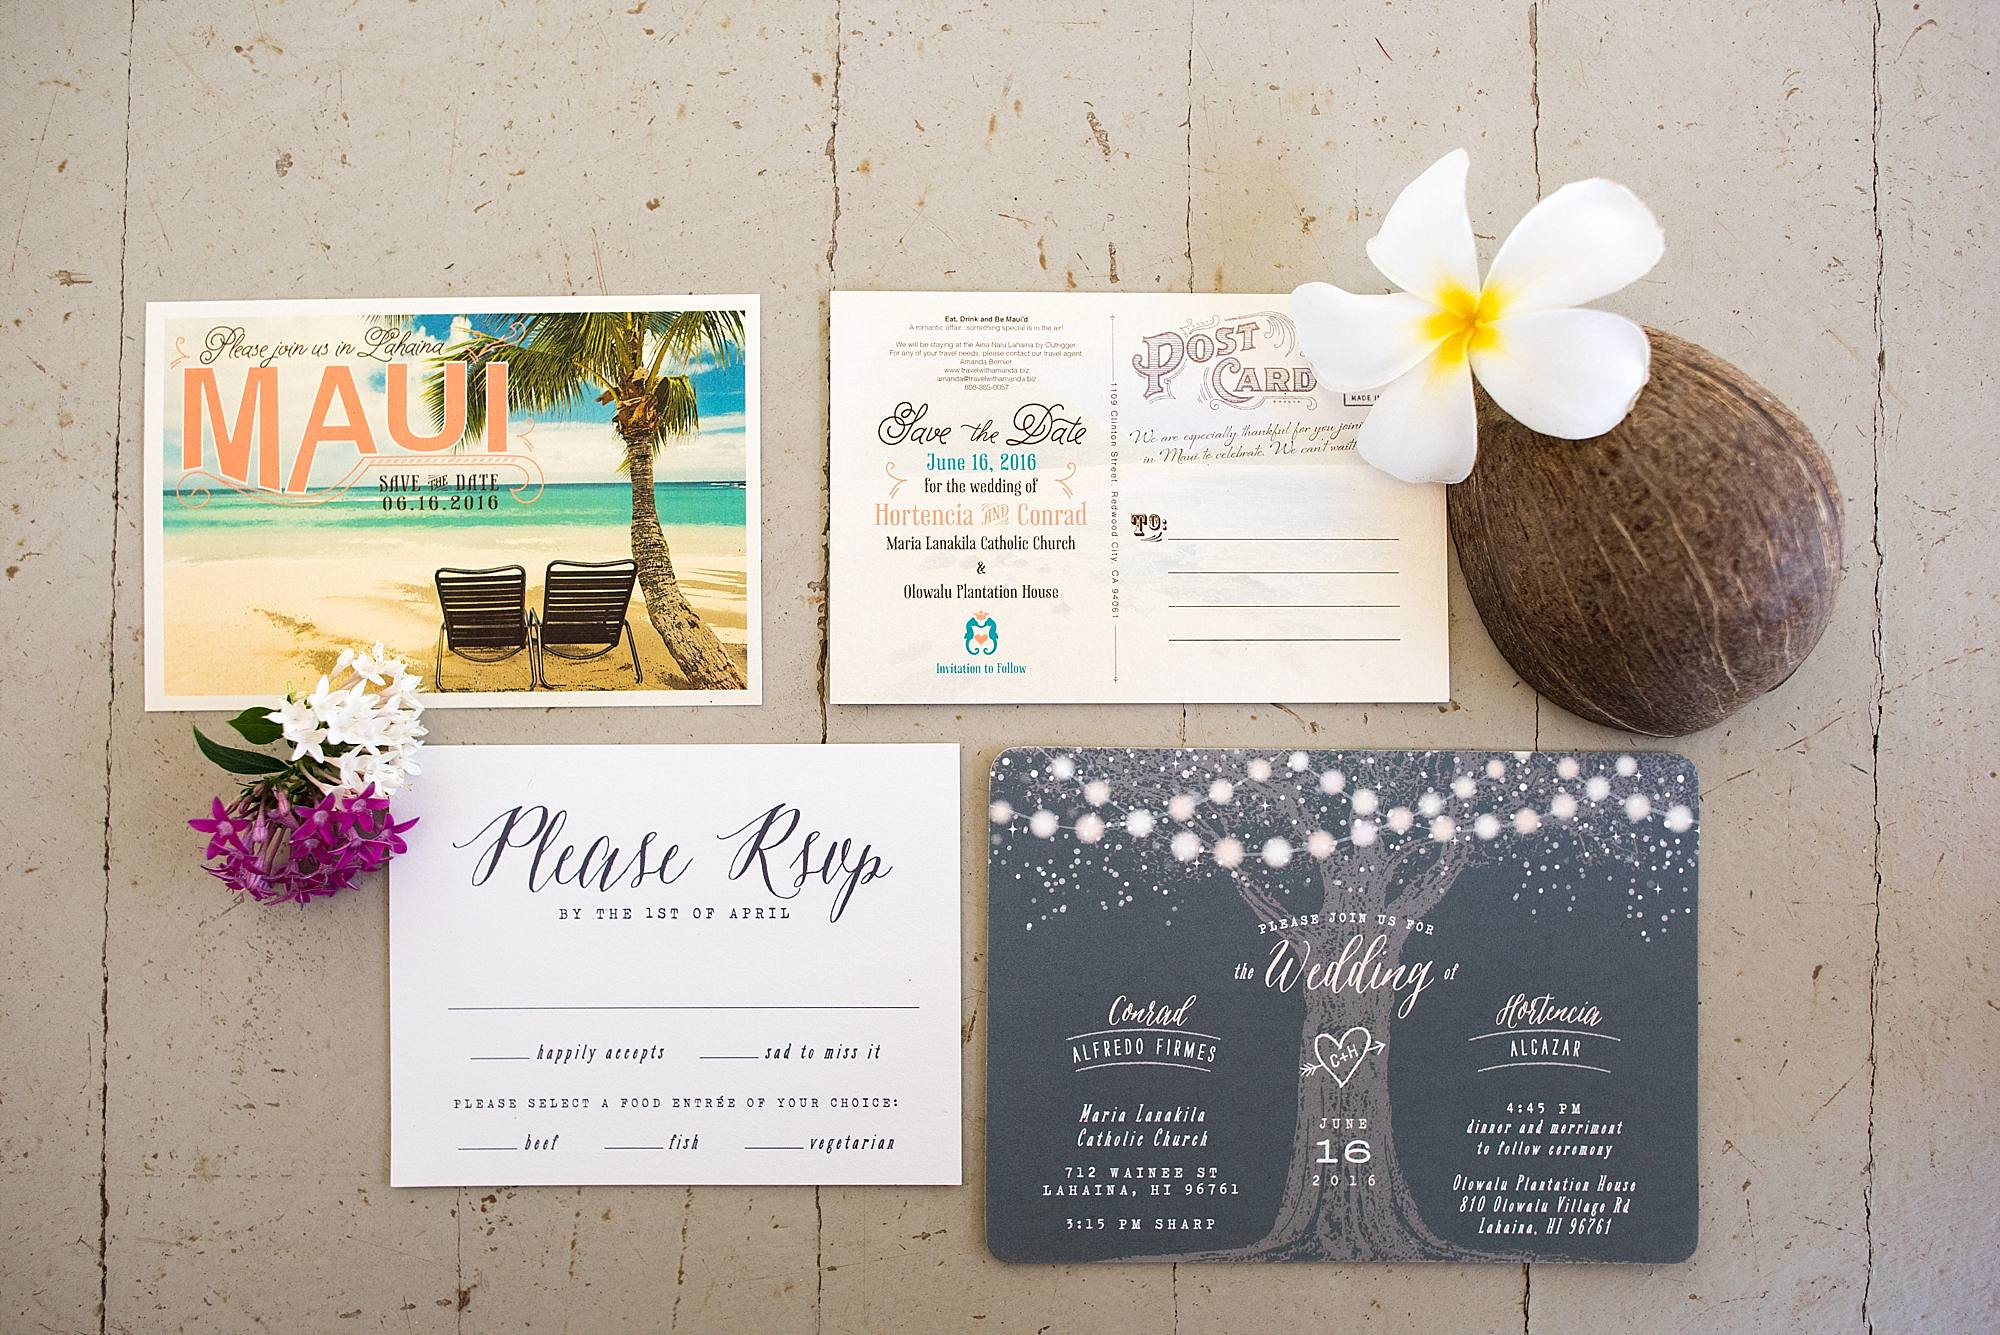 Custom Maui wedding stationary